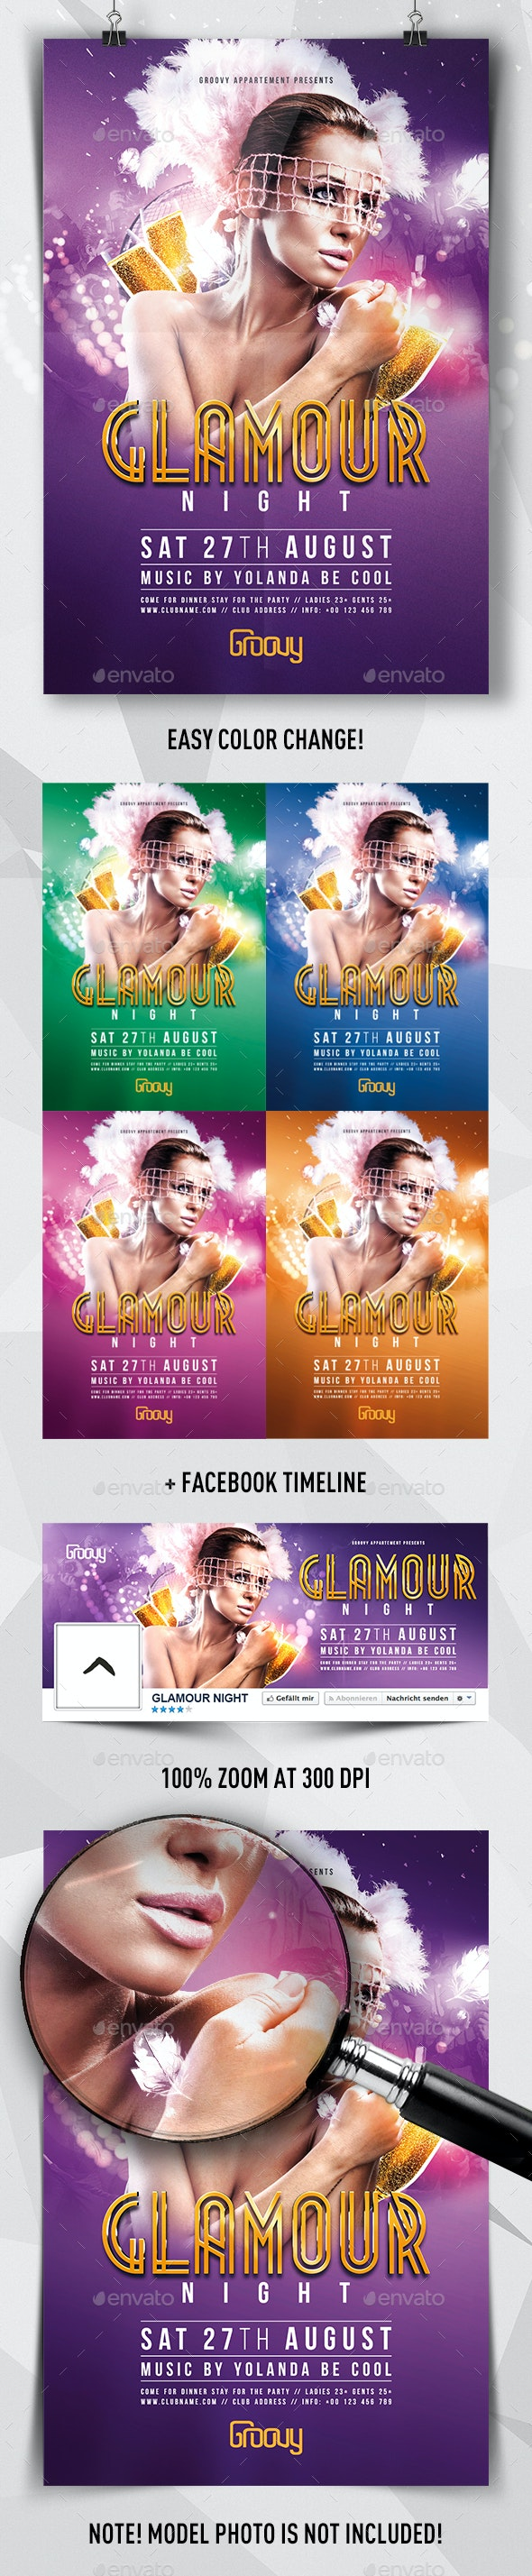 Glamour Night Flyer - Clubs & Parties Events